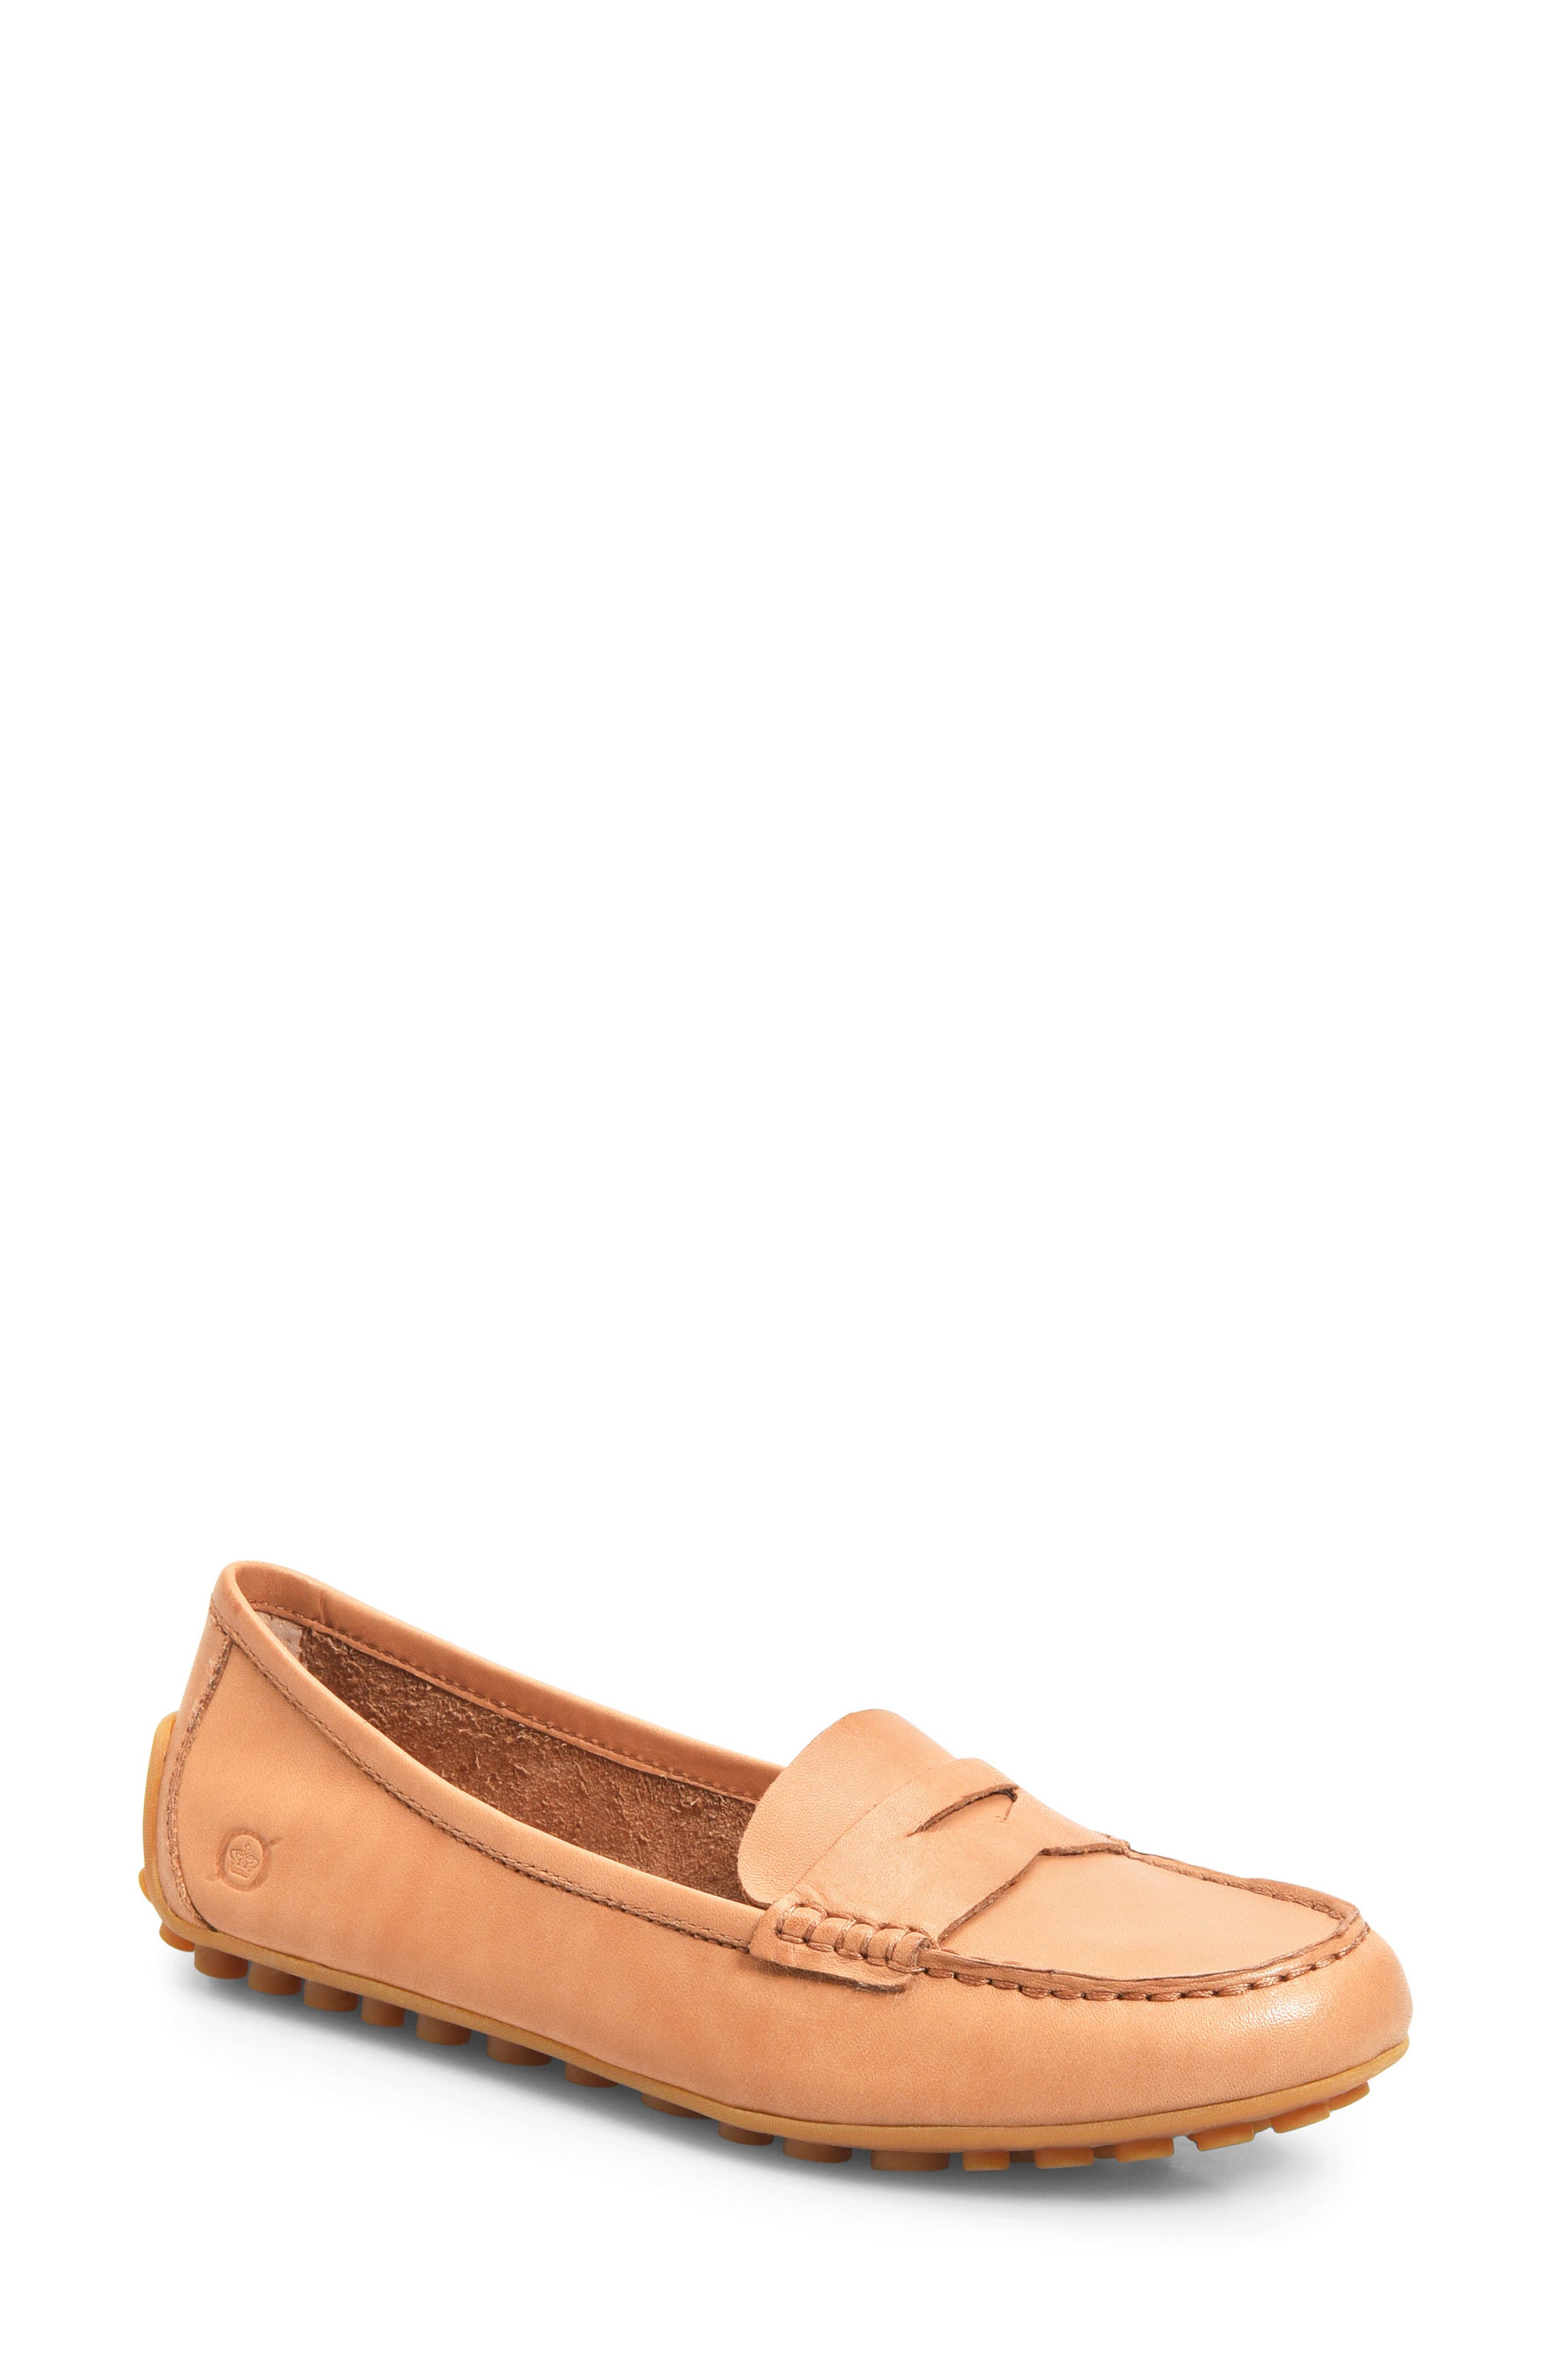 BØRN Malena Driving Loafer, Main, color, TAN BROWN LEATHER